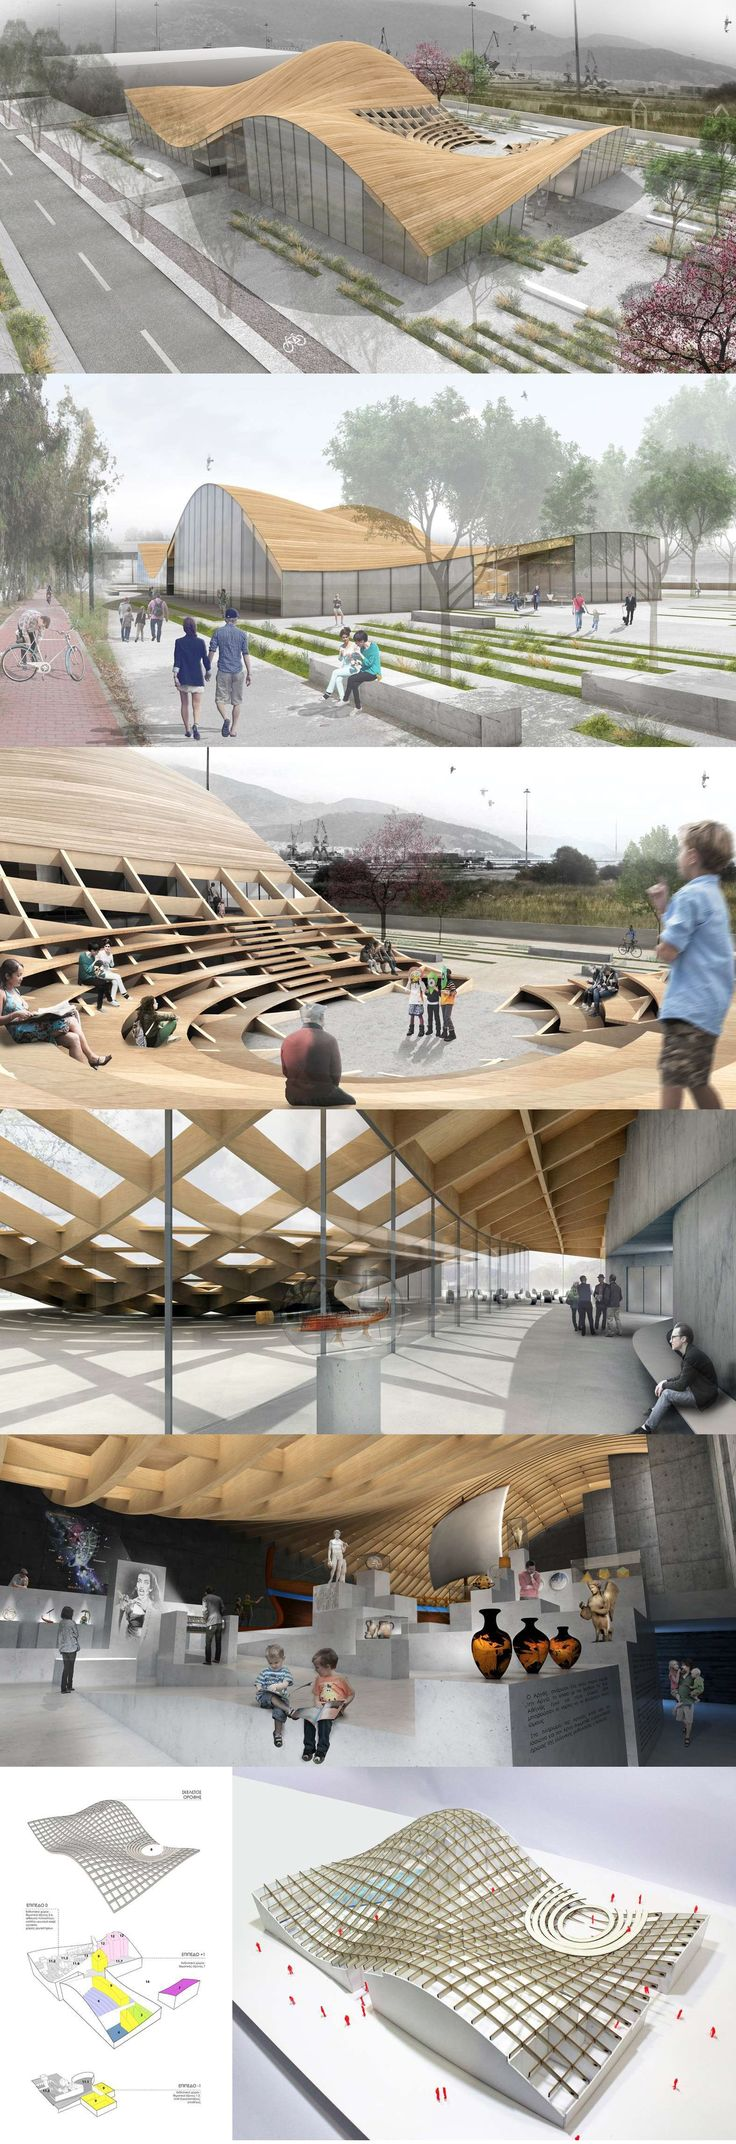 http://aasarchitecture.com/2014/05/museum-argo-number-architects.html